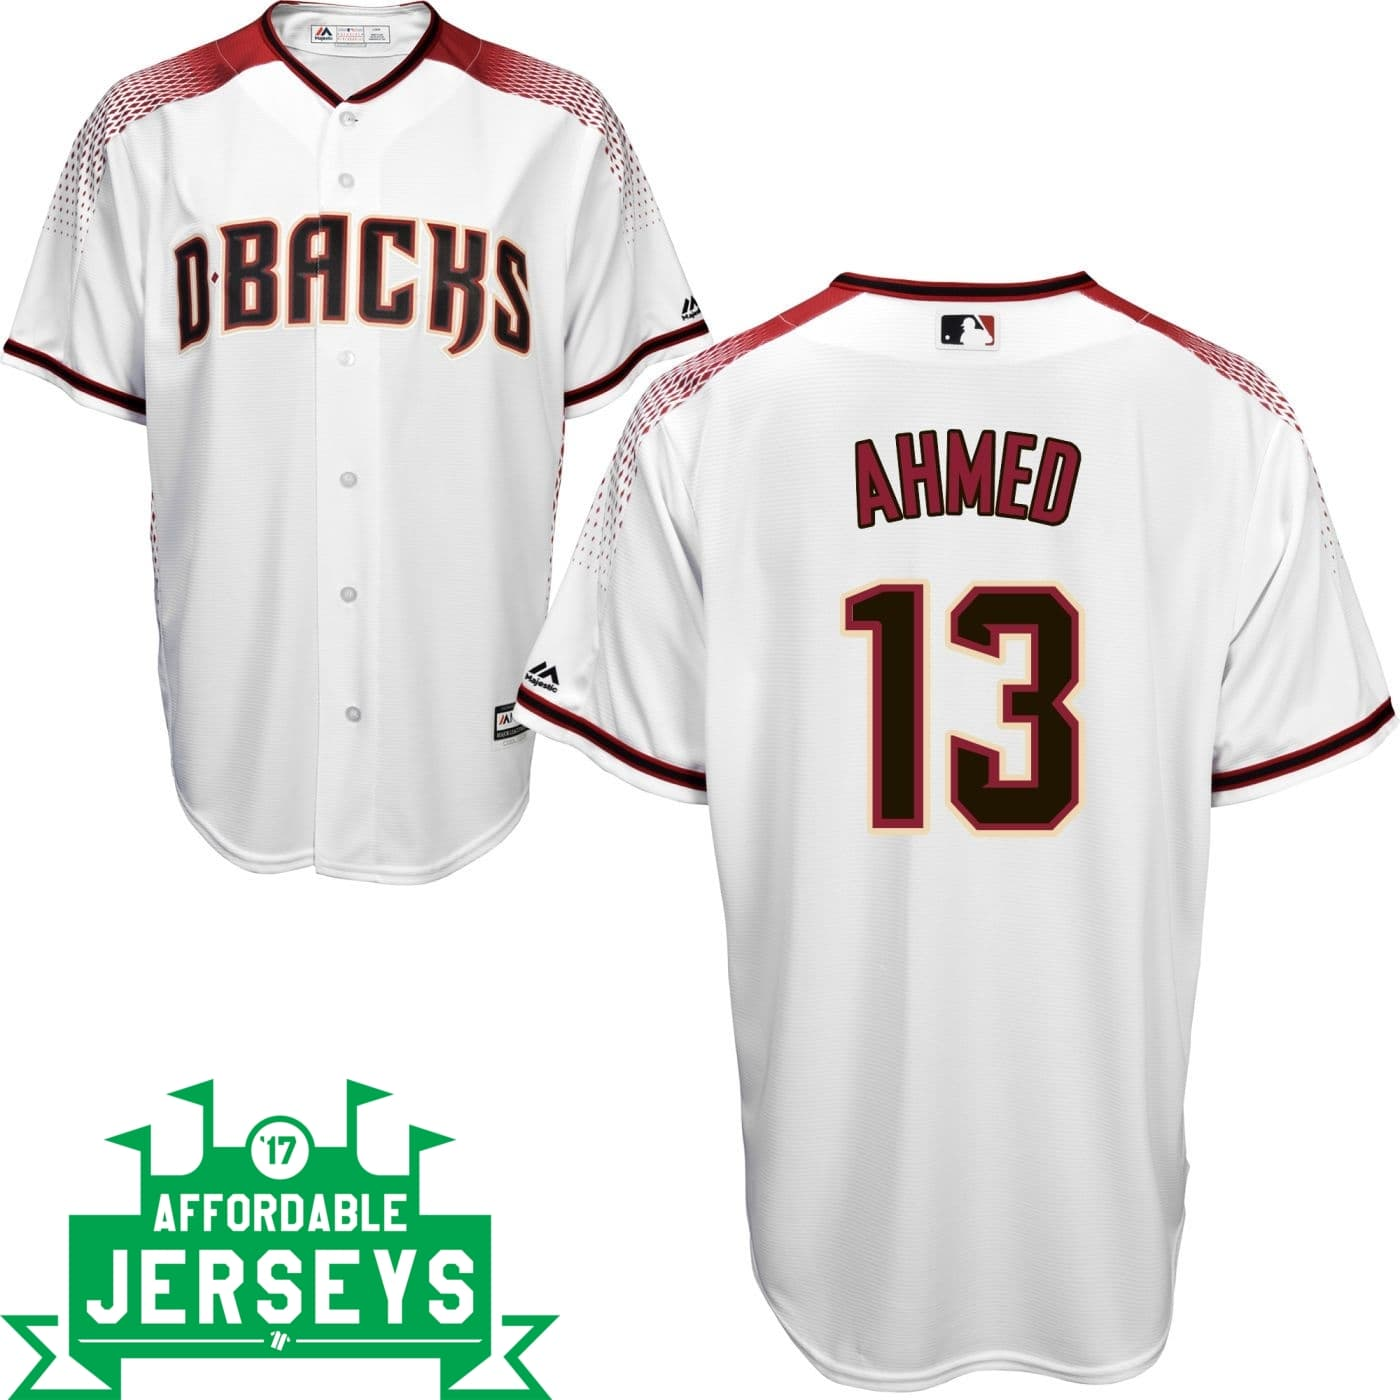 Nick Ahmed Home Cool Base Player Jersey - AffordableJerseys.com